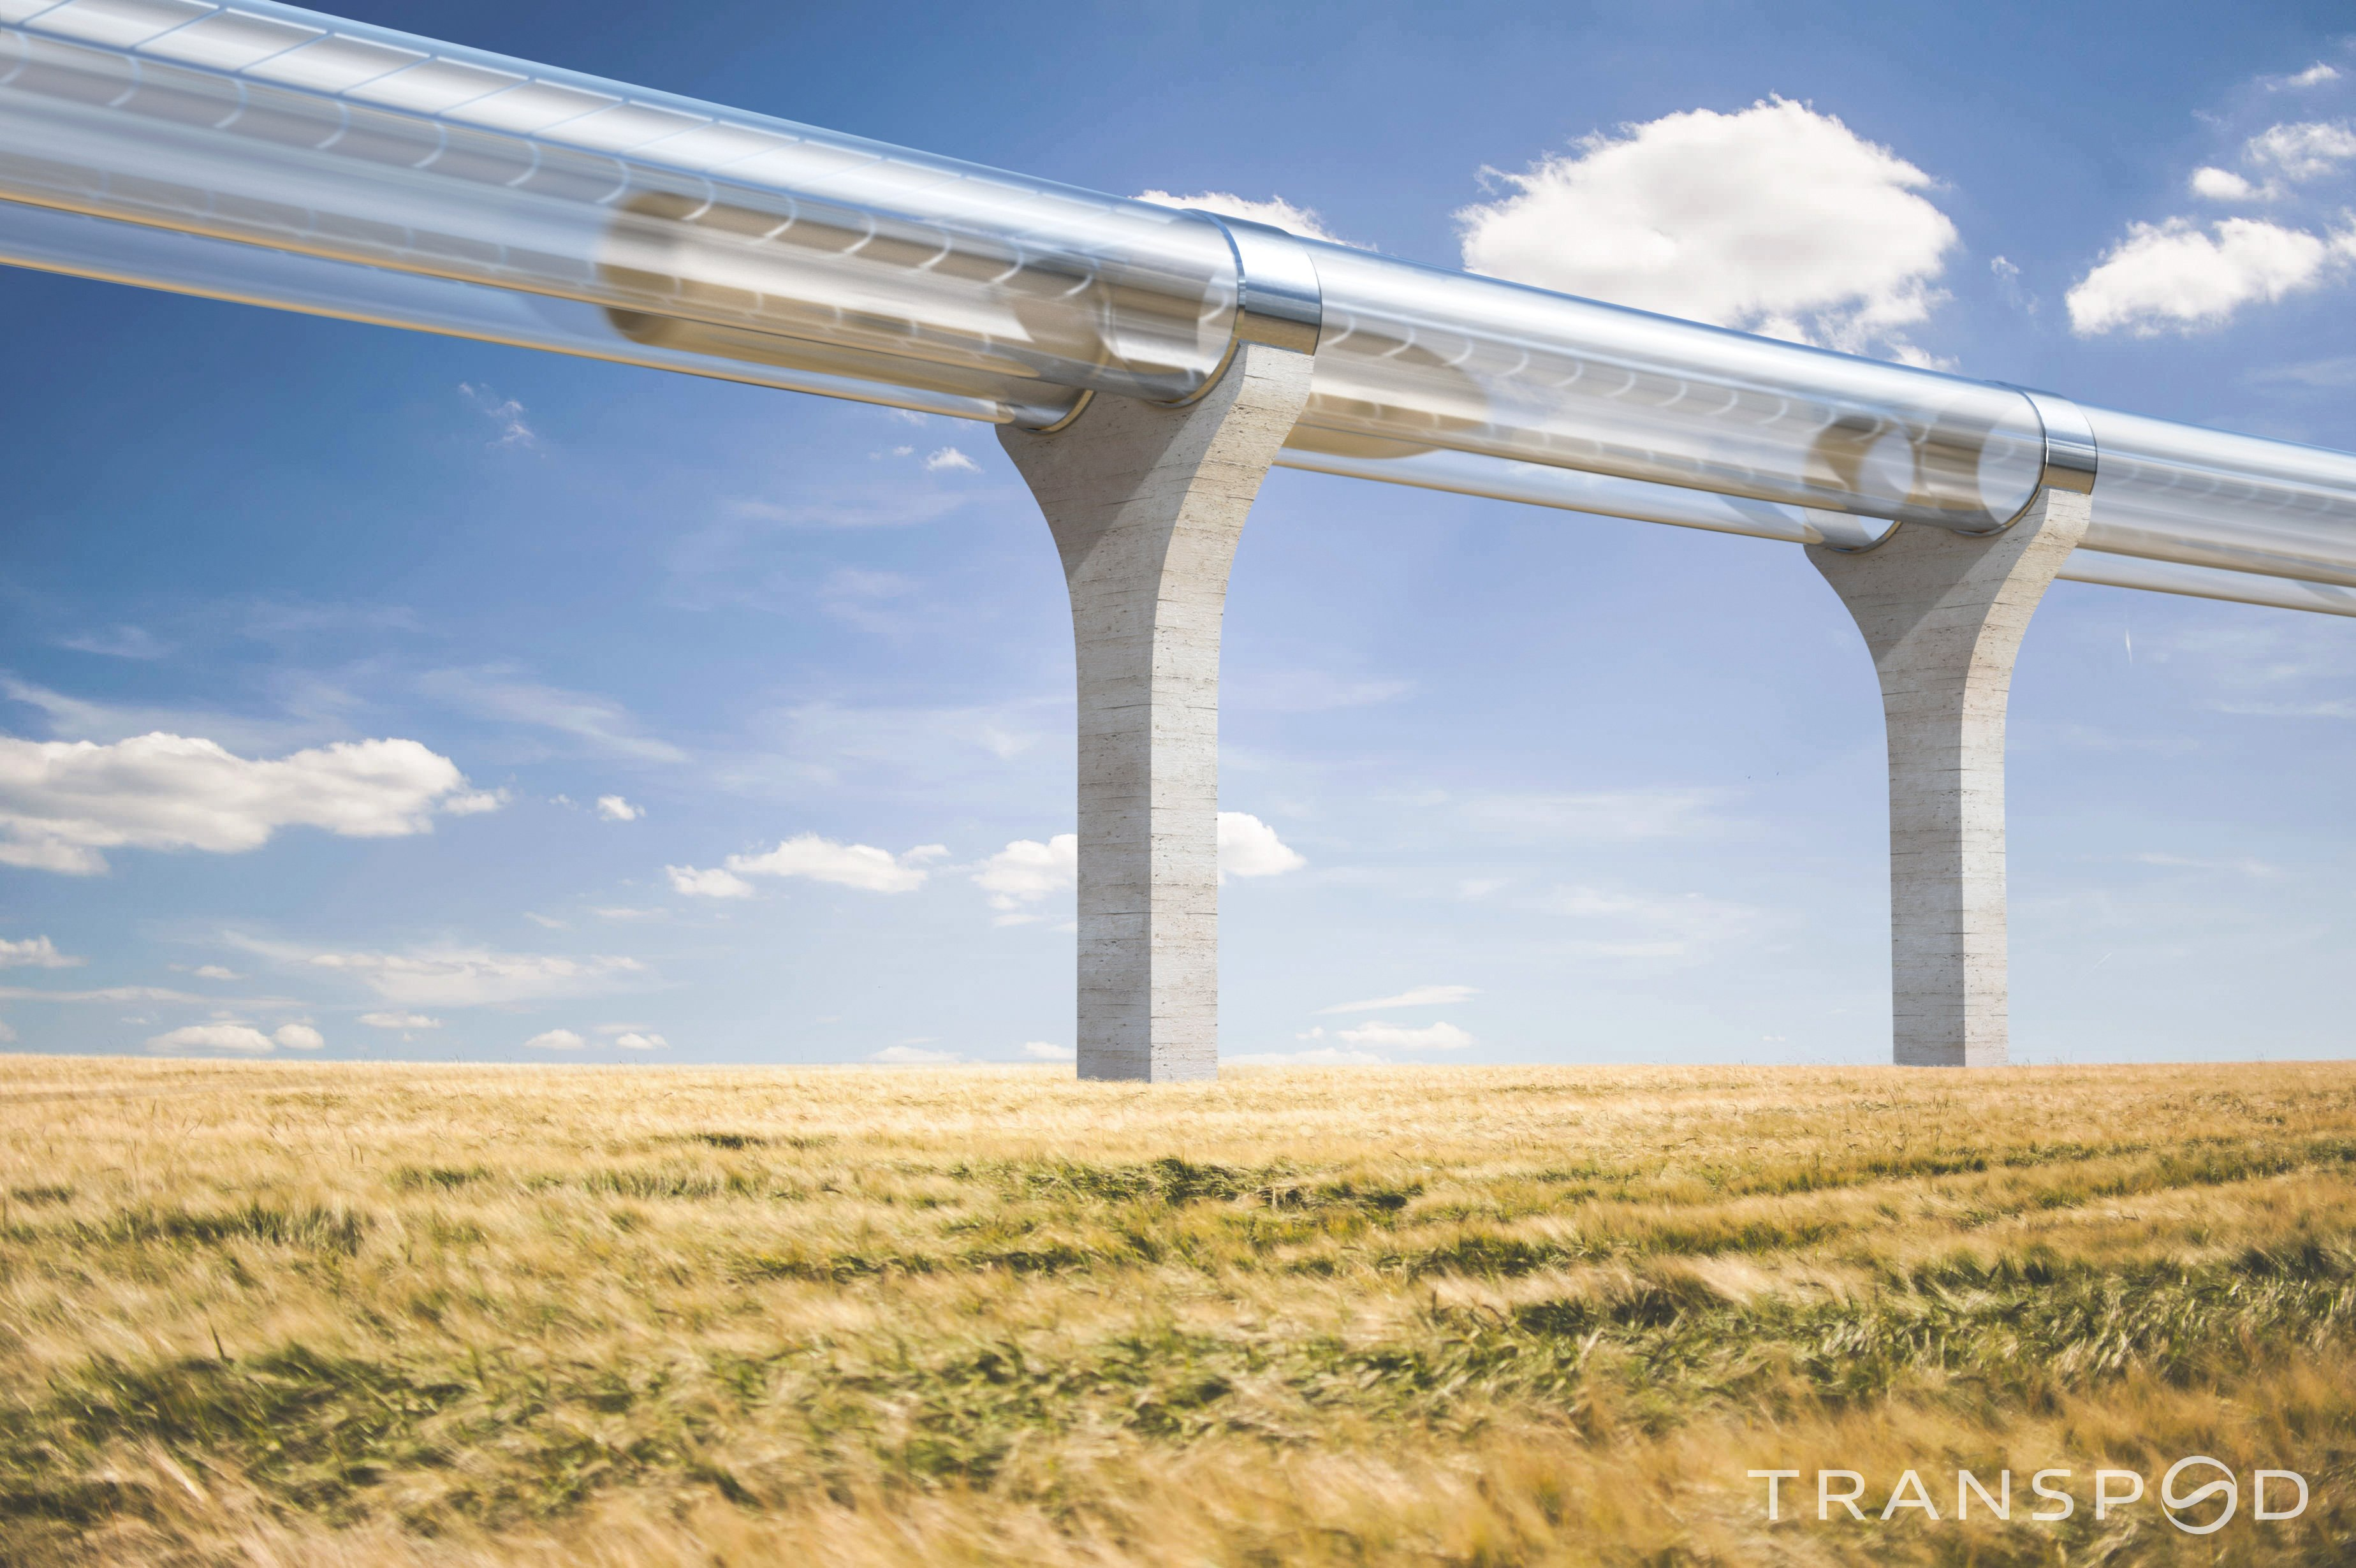 An artist's conception of a TransPod hyperloop system. Source: TransPod